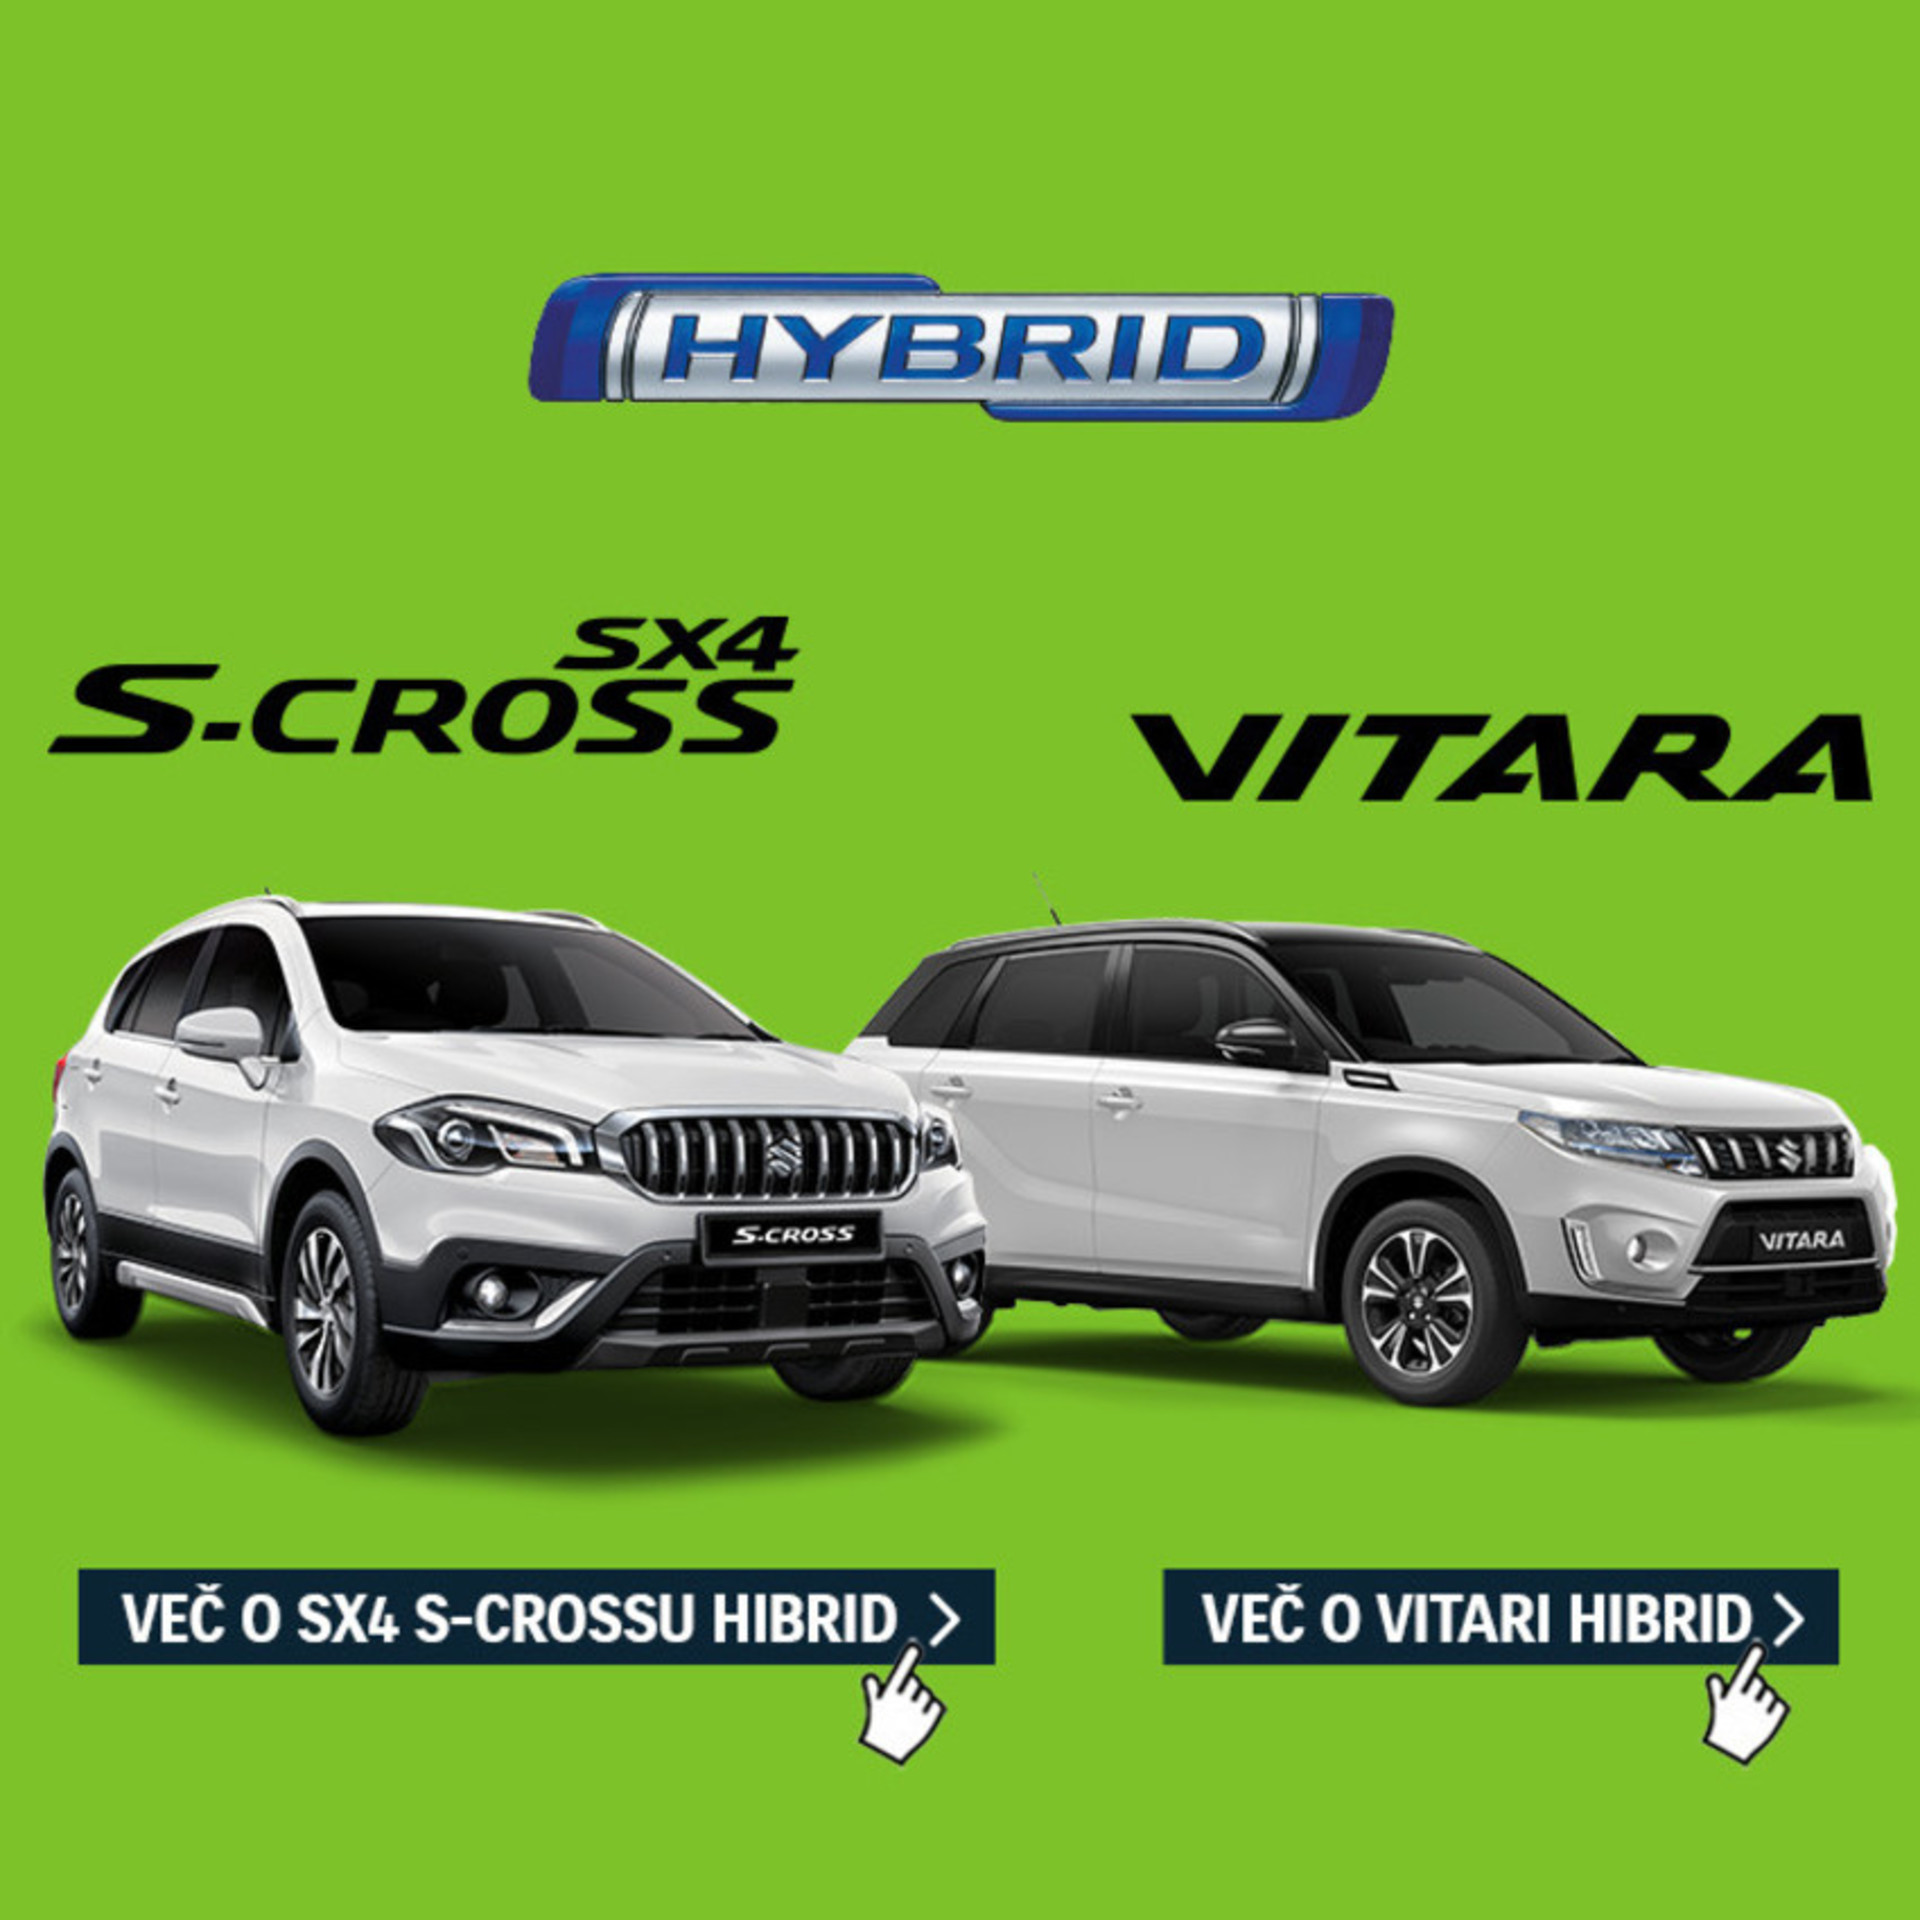 Vitara in SX4 S-Cross hibrid